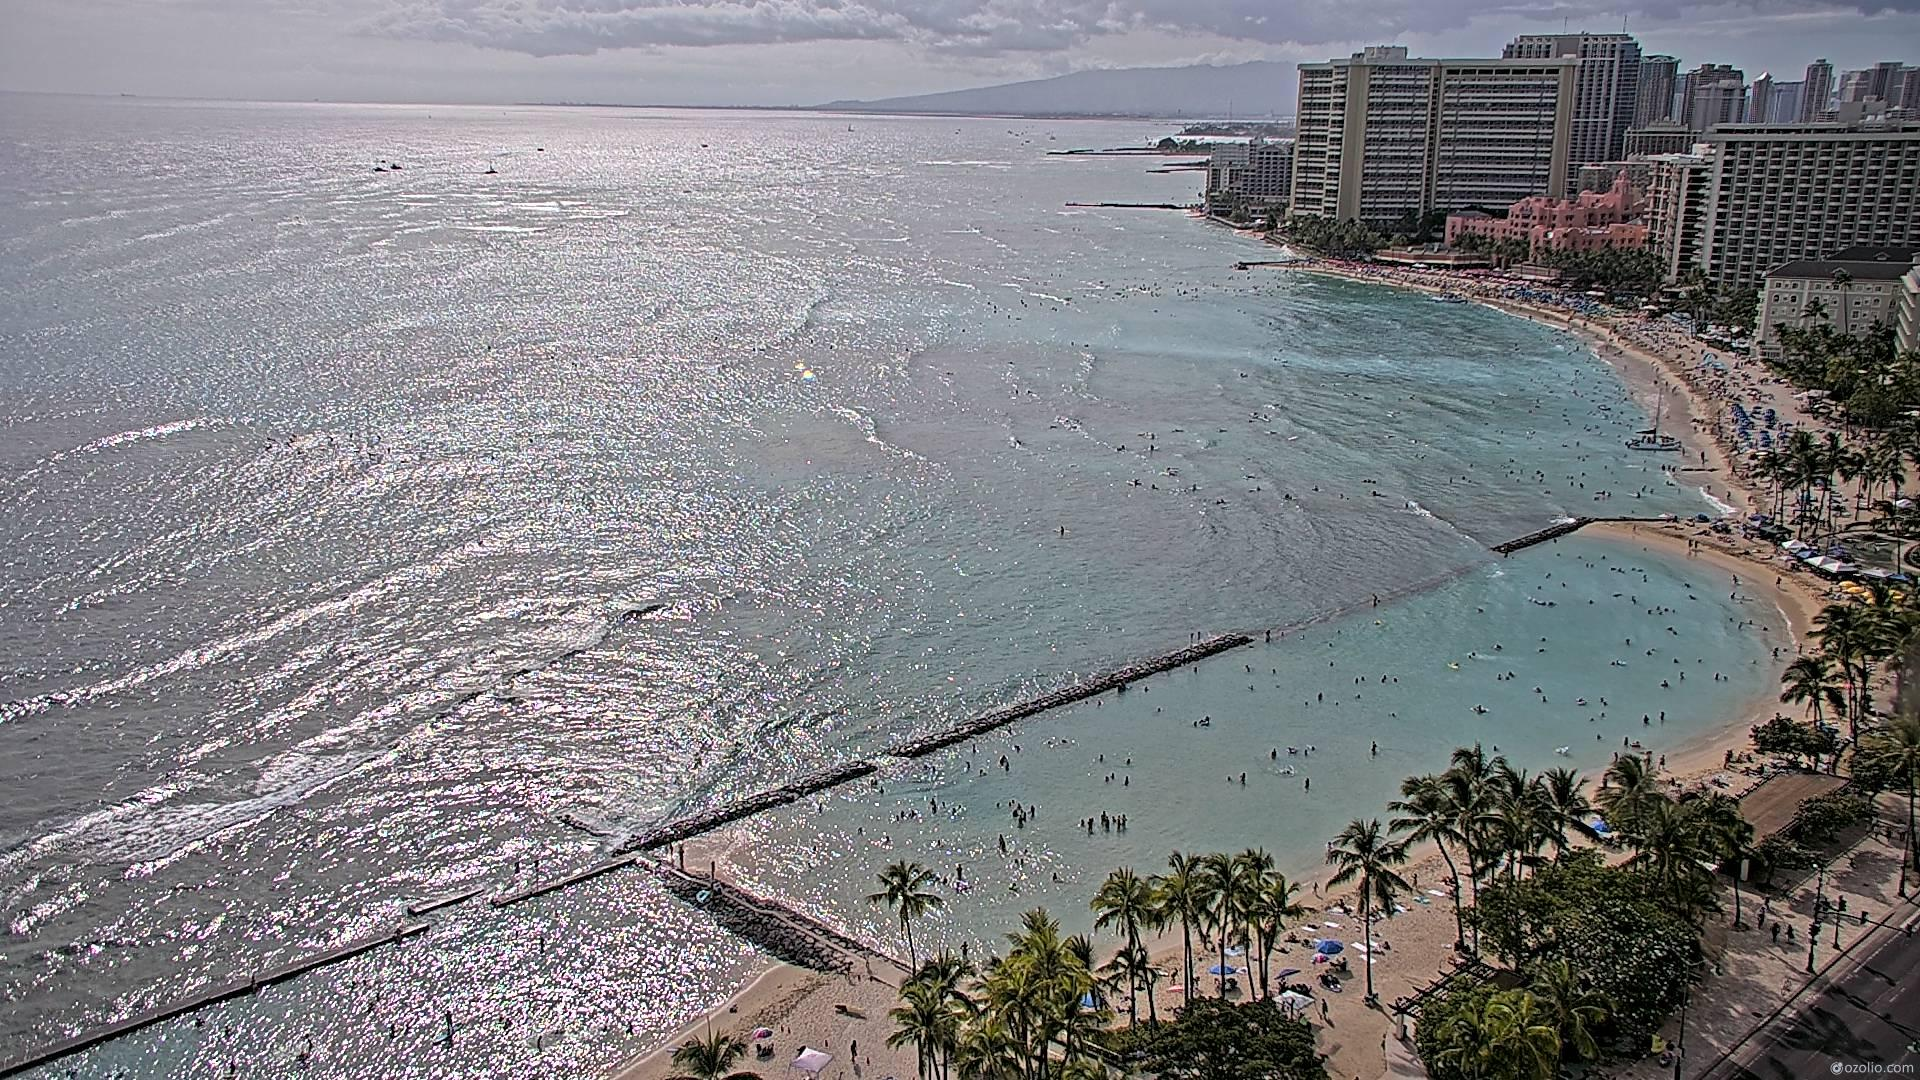 Waikiki Beach, Hawaii Fri. 16:16